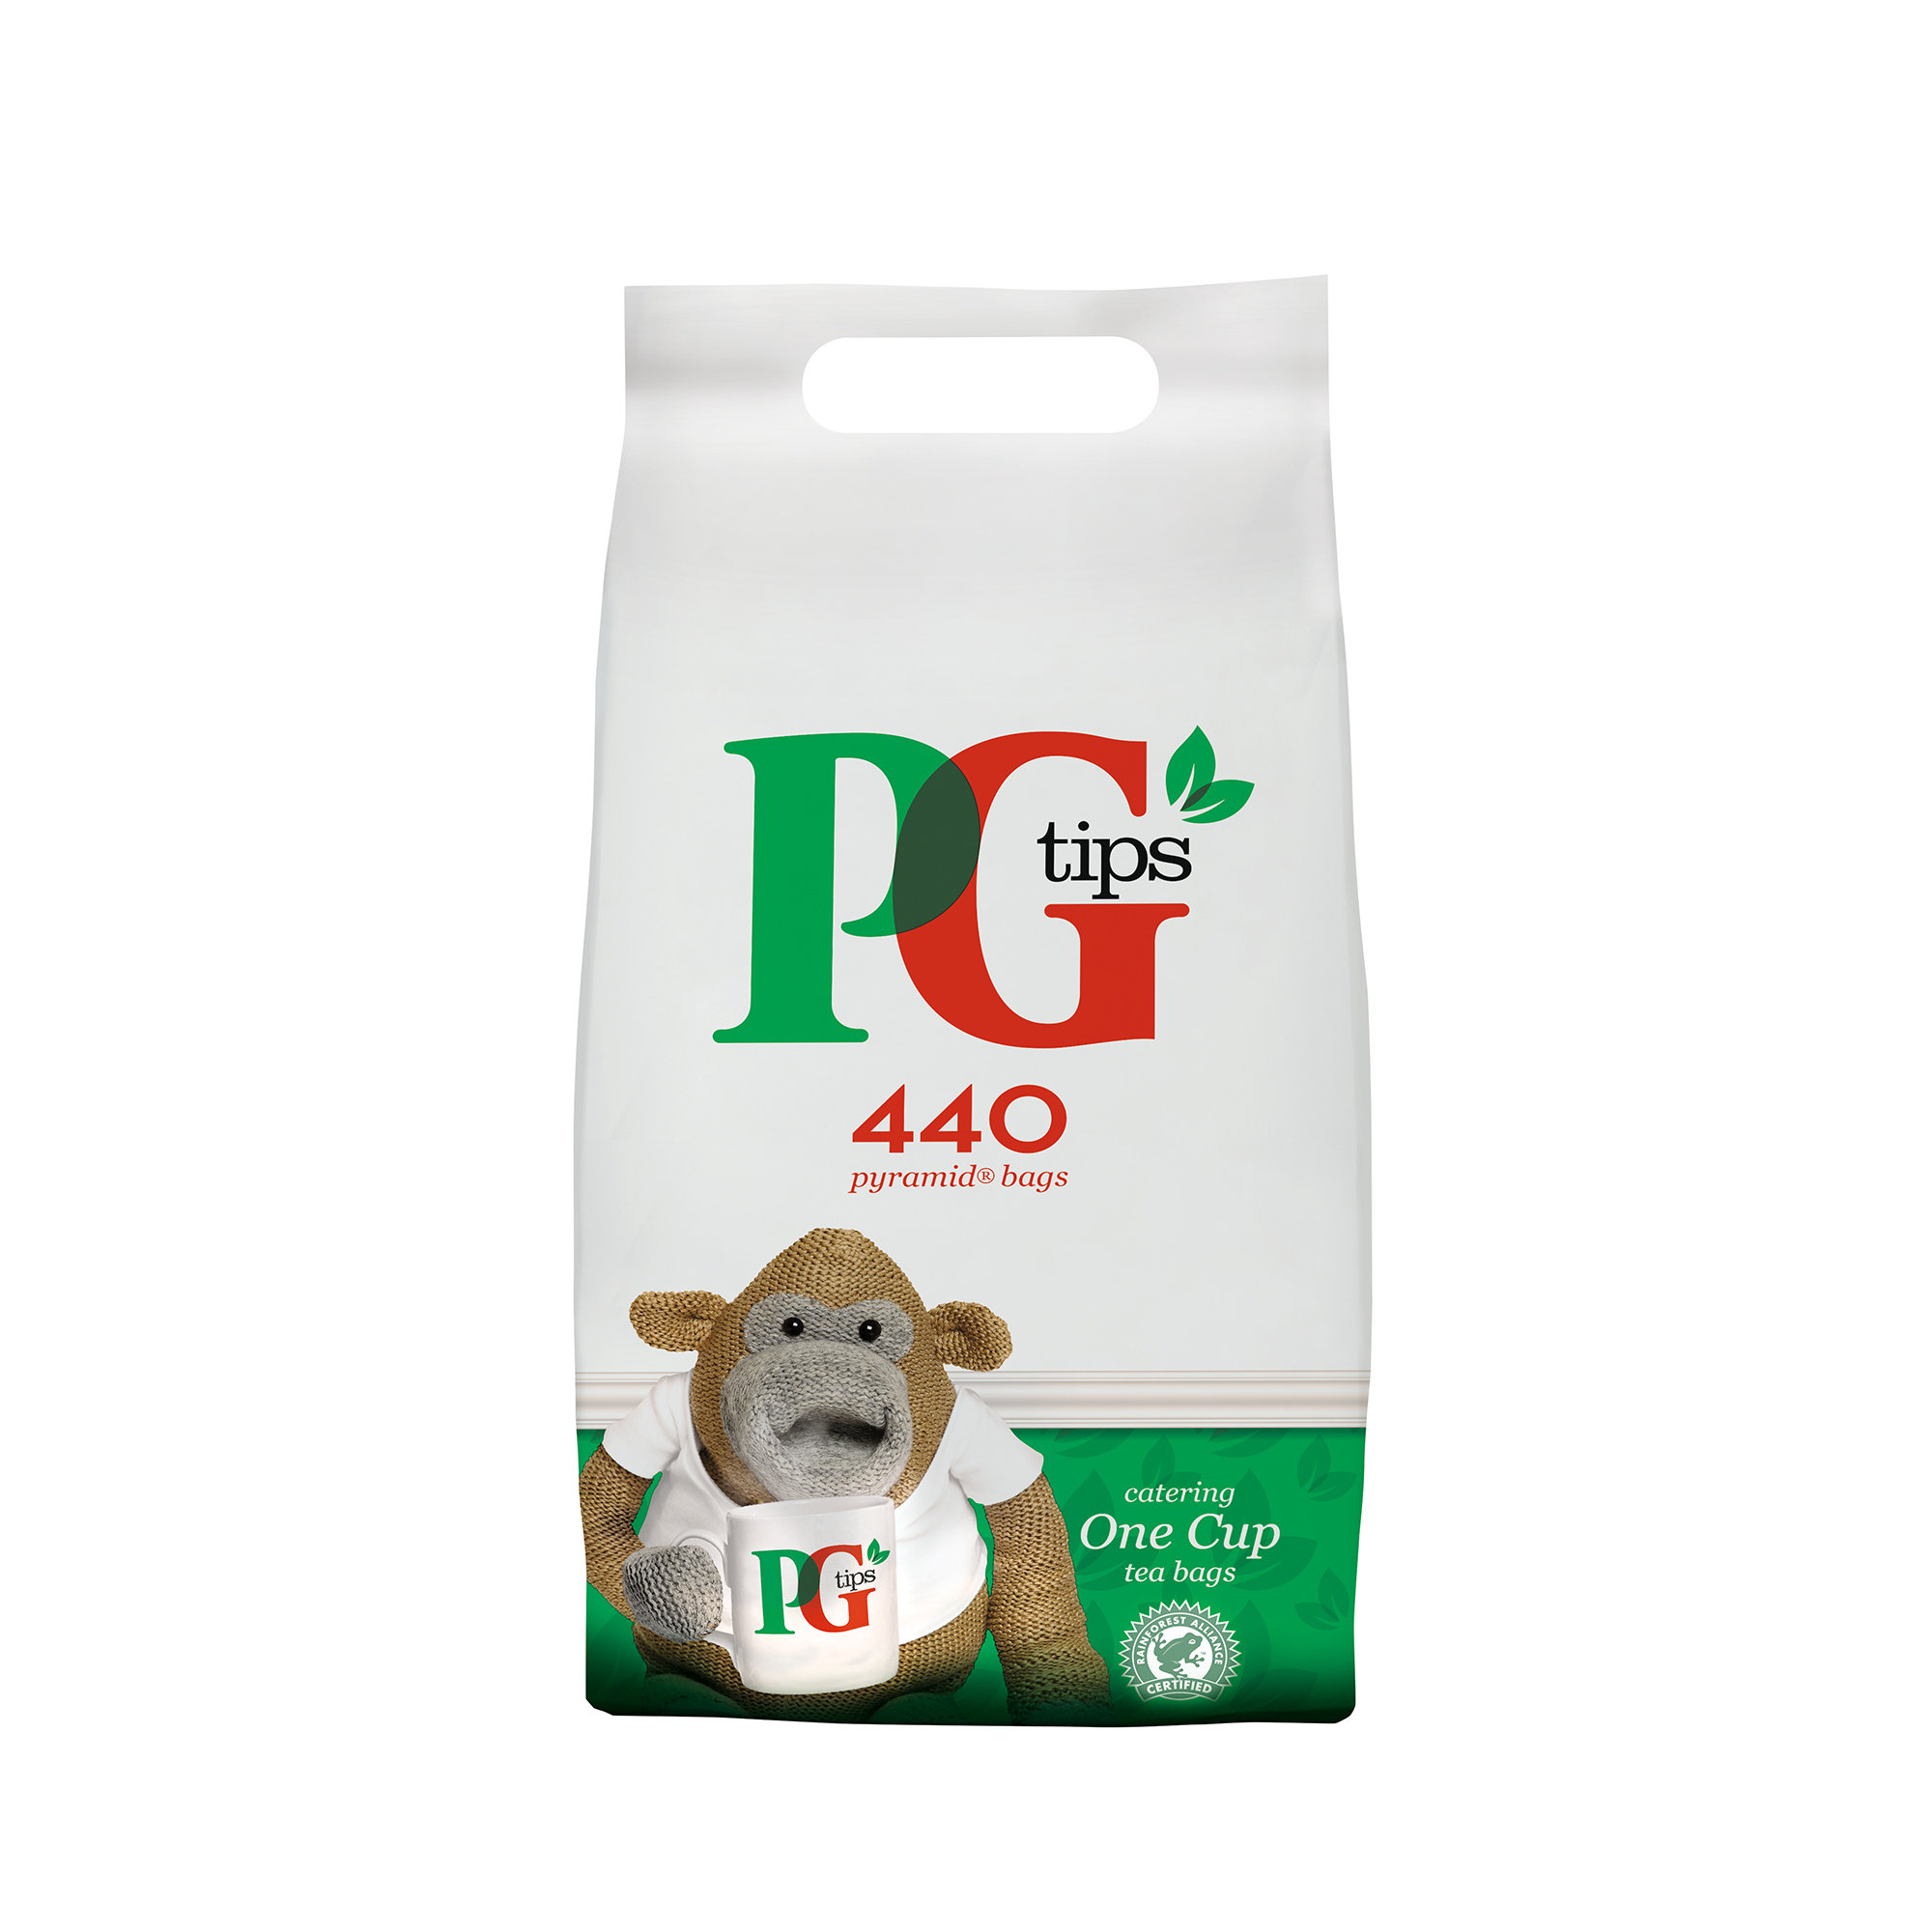 PG Tips Tea Bags Pyramid Ref 67395657 Pack 440